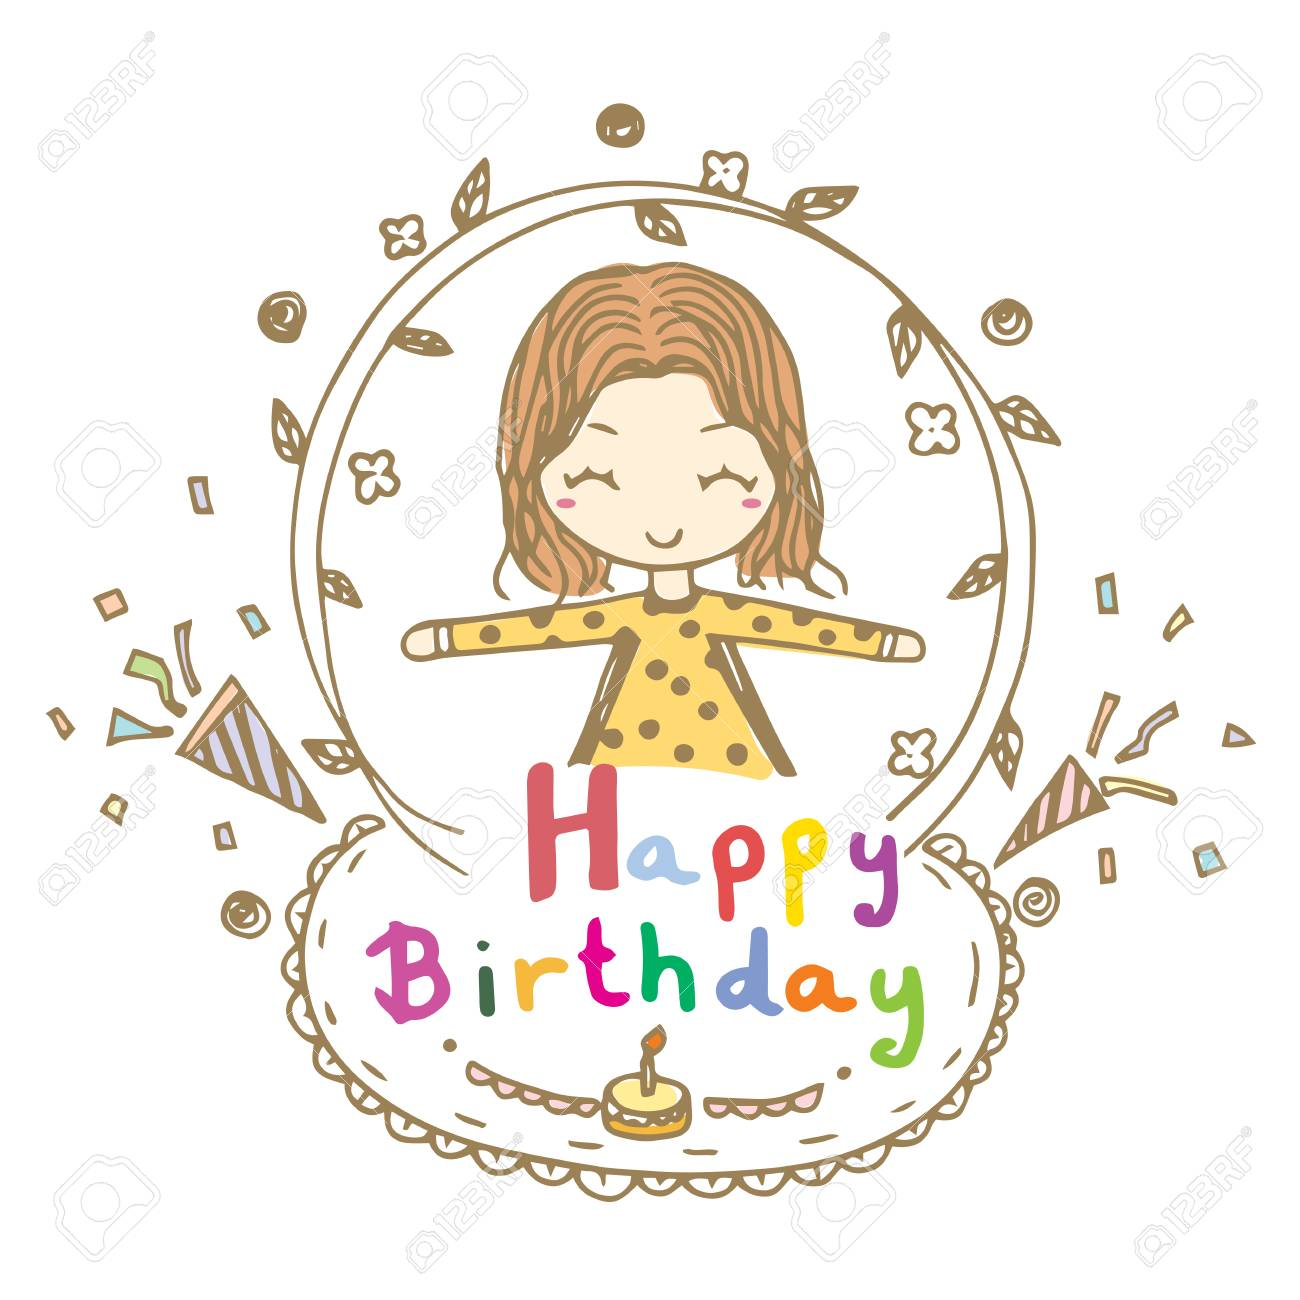 cute happy birthday drawings ; 88303732-doodle-drawing-vector-of-cute-girl-smile-and-open-arms-with-happy-birthday-word